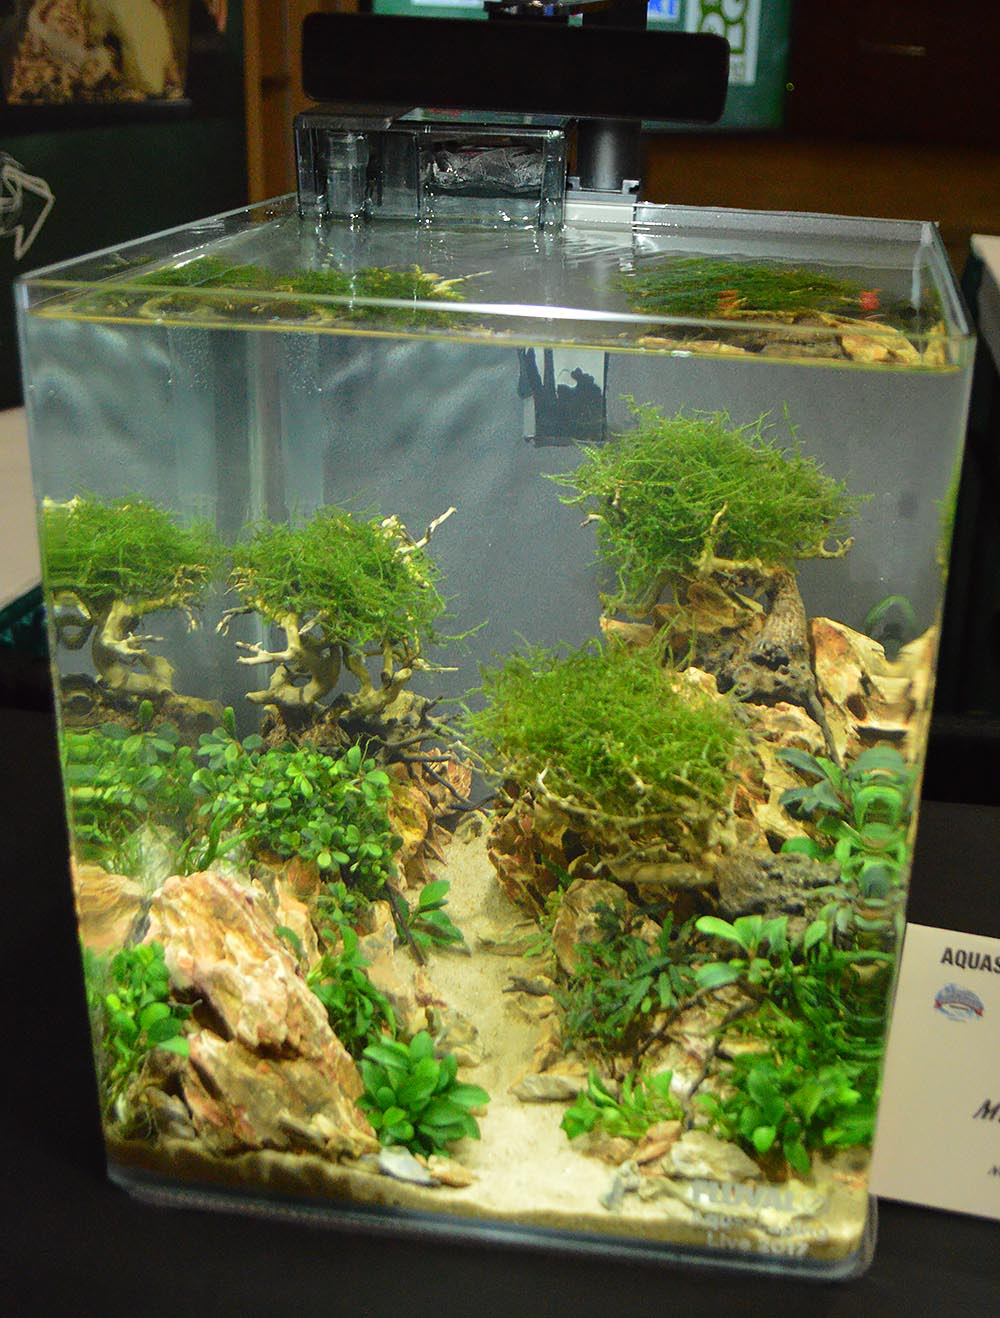 Aquascape by Mike Bernard